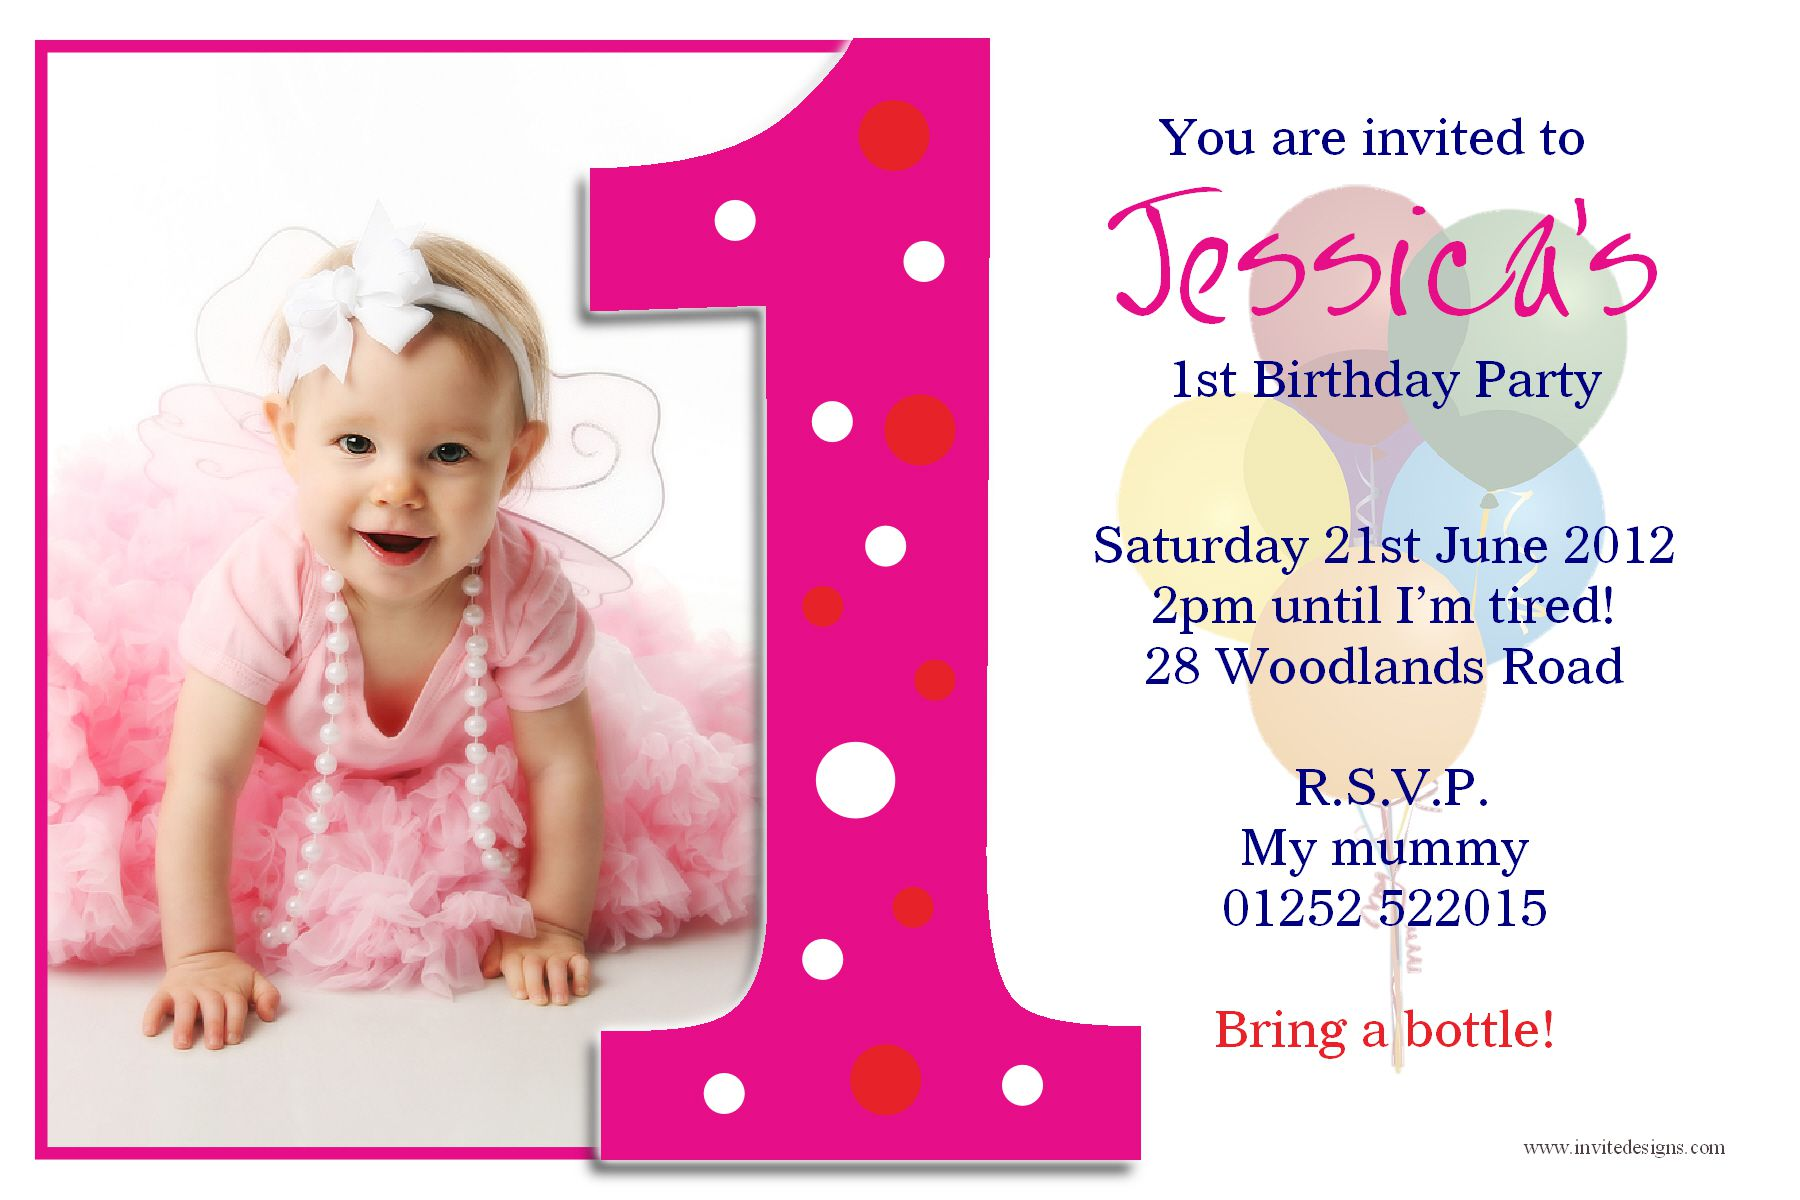 designs for invitation cards birthday ; 1-Birthday-Invitation-Card-is-captivating-ideas-which-can-be-applied-into-your-birthday-Card-1